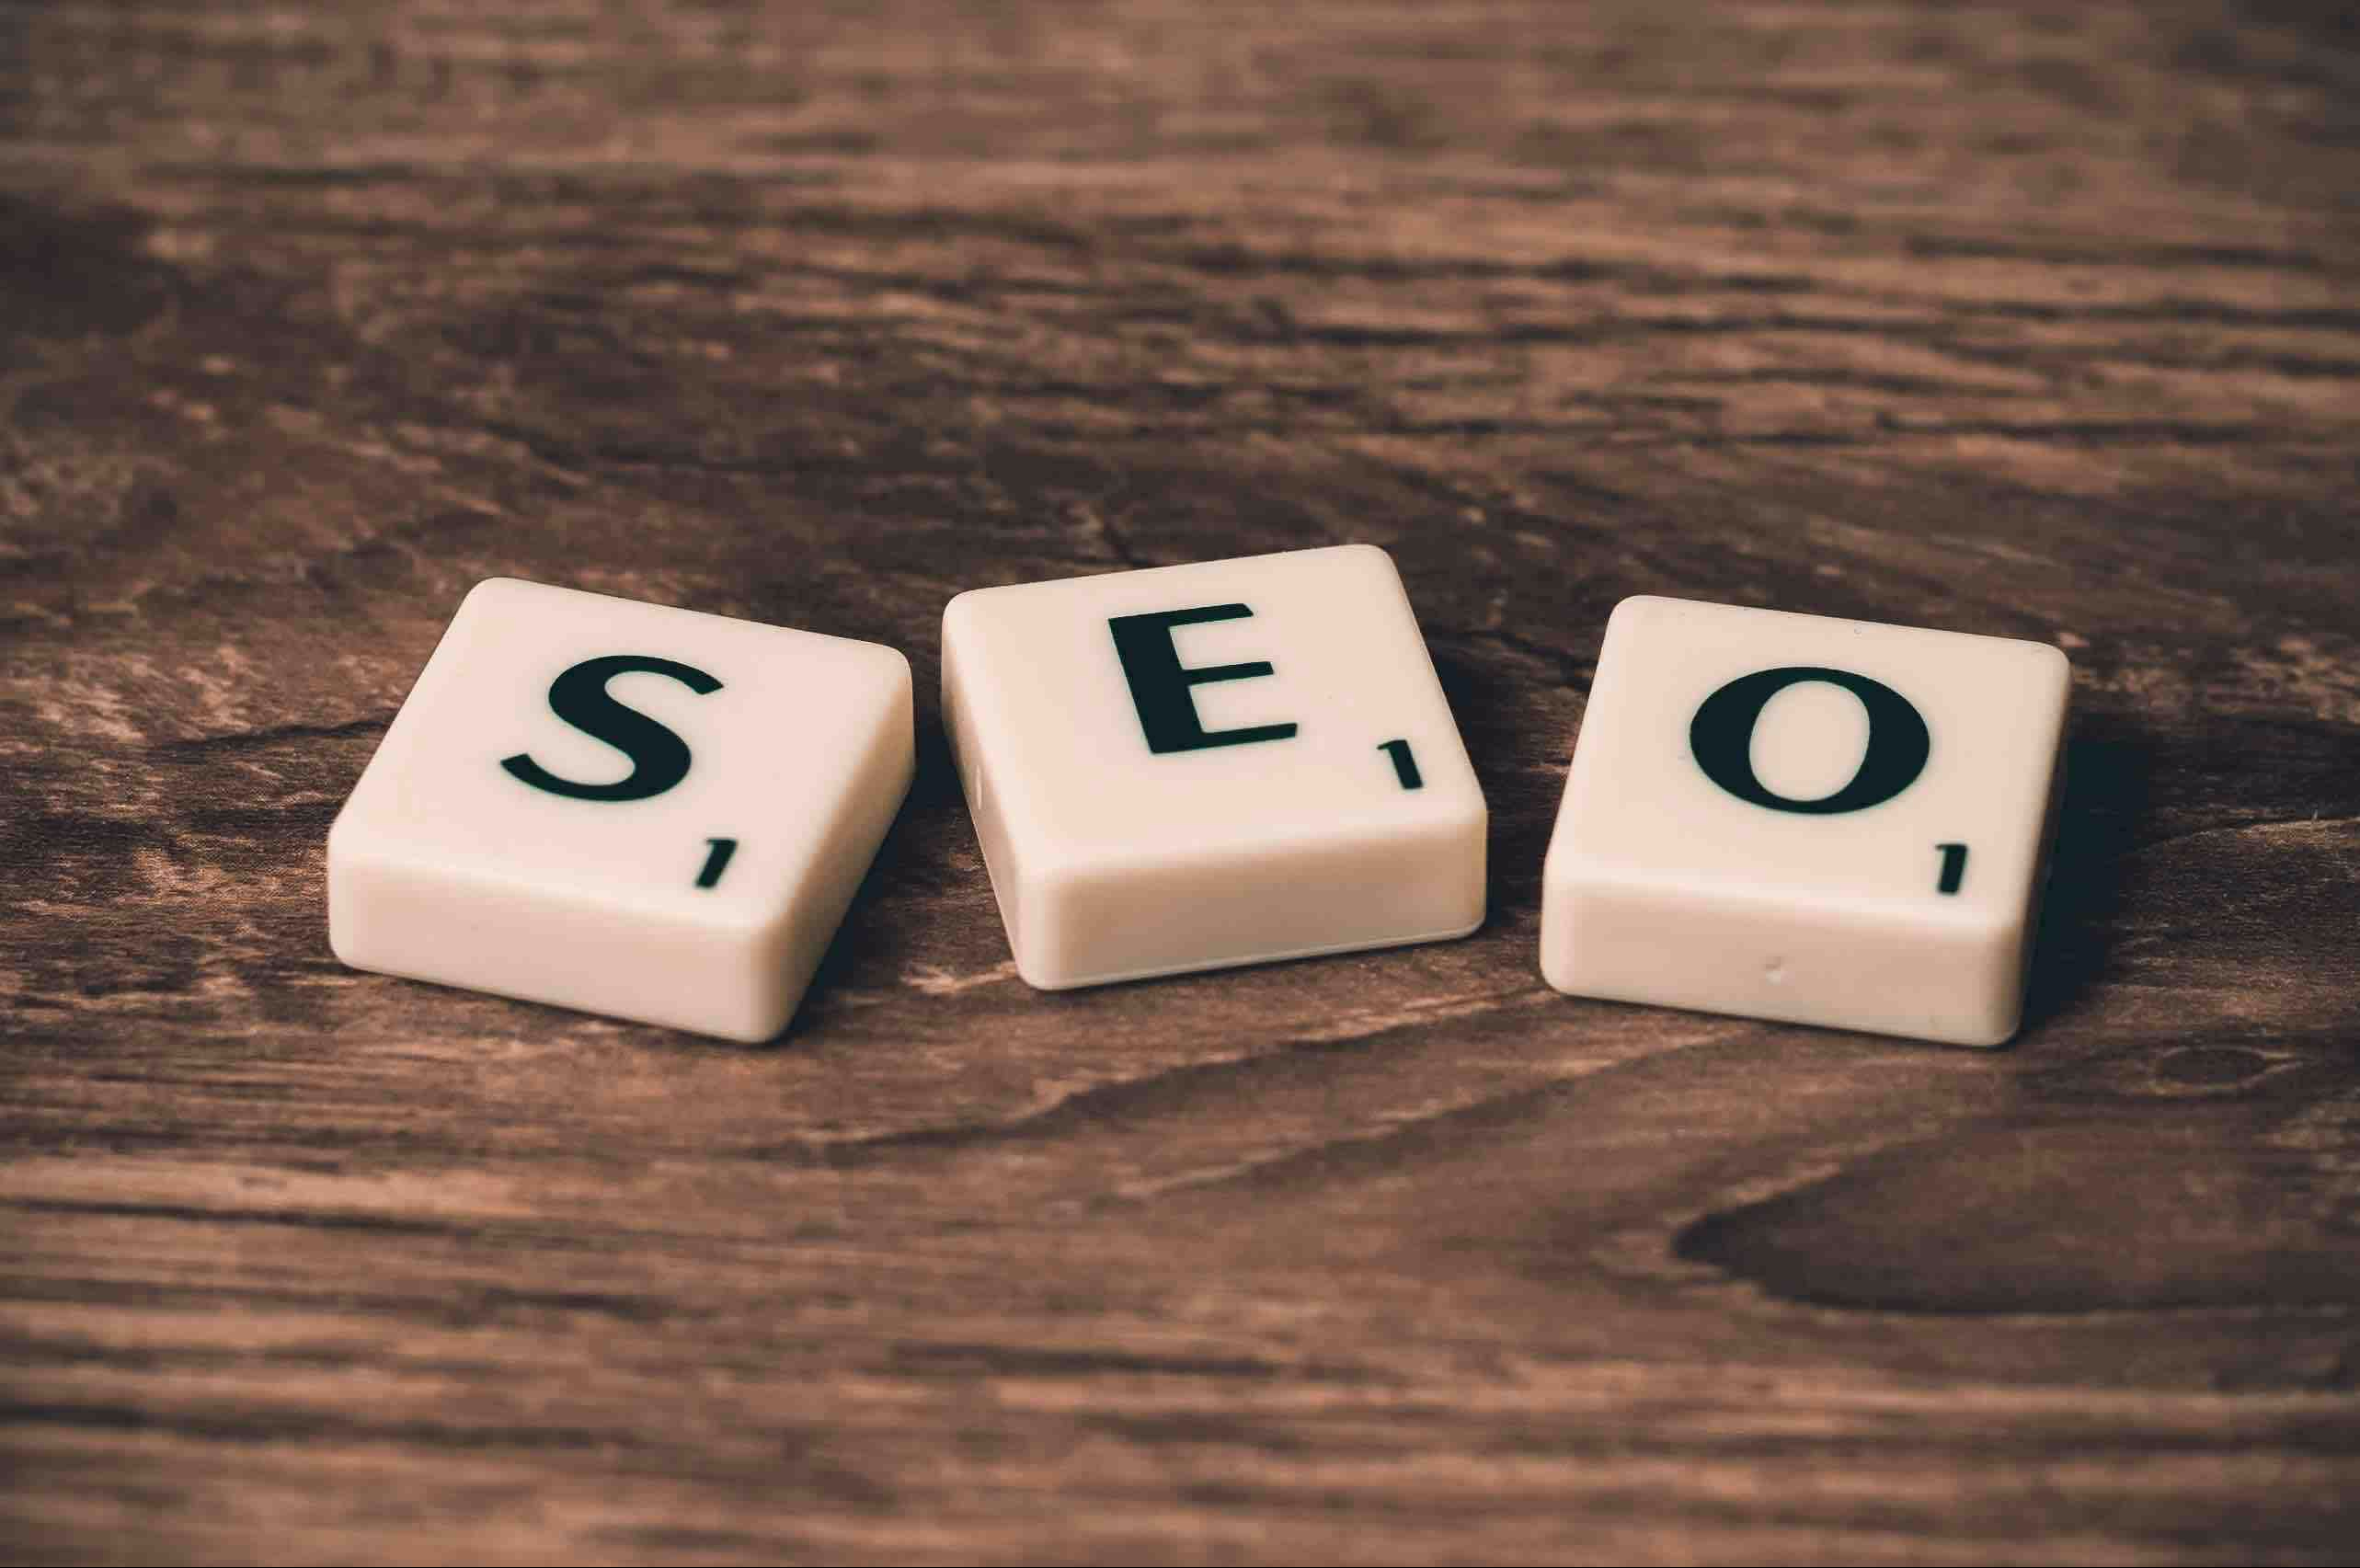 seo social marketing